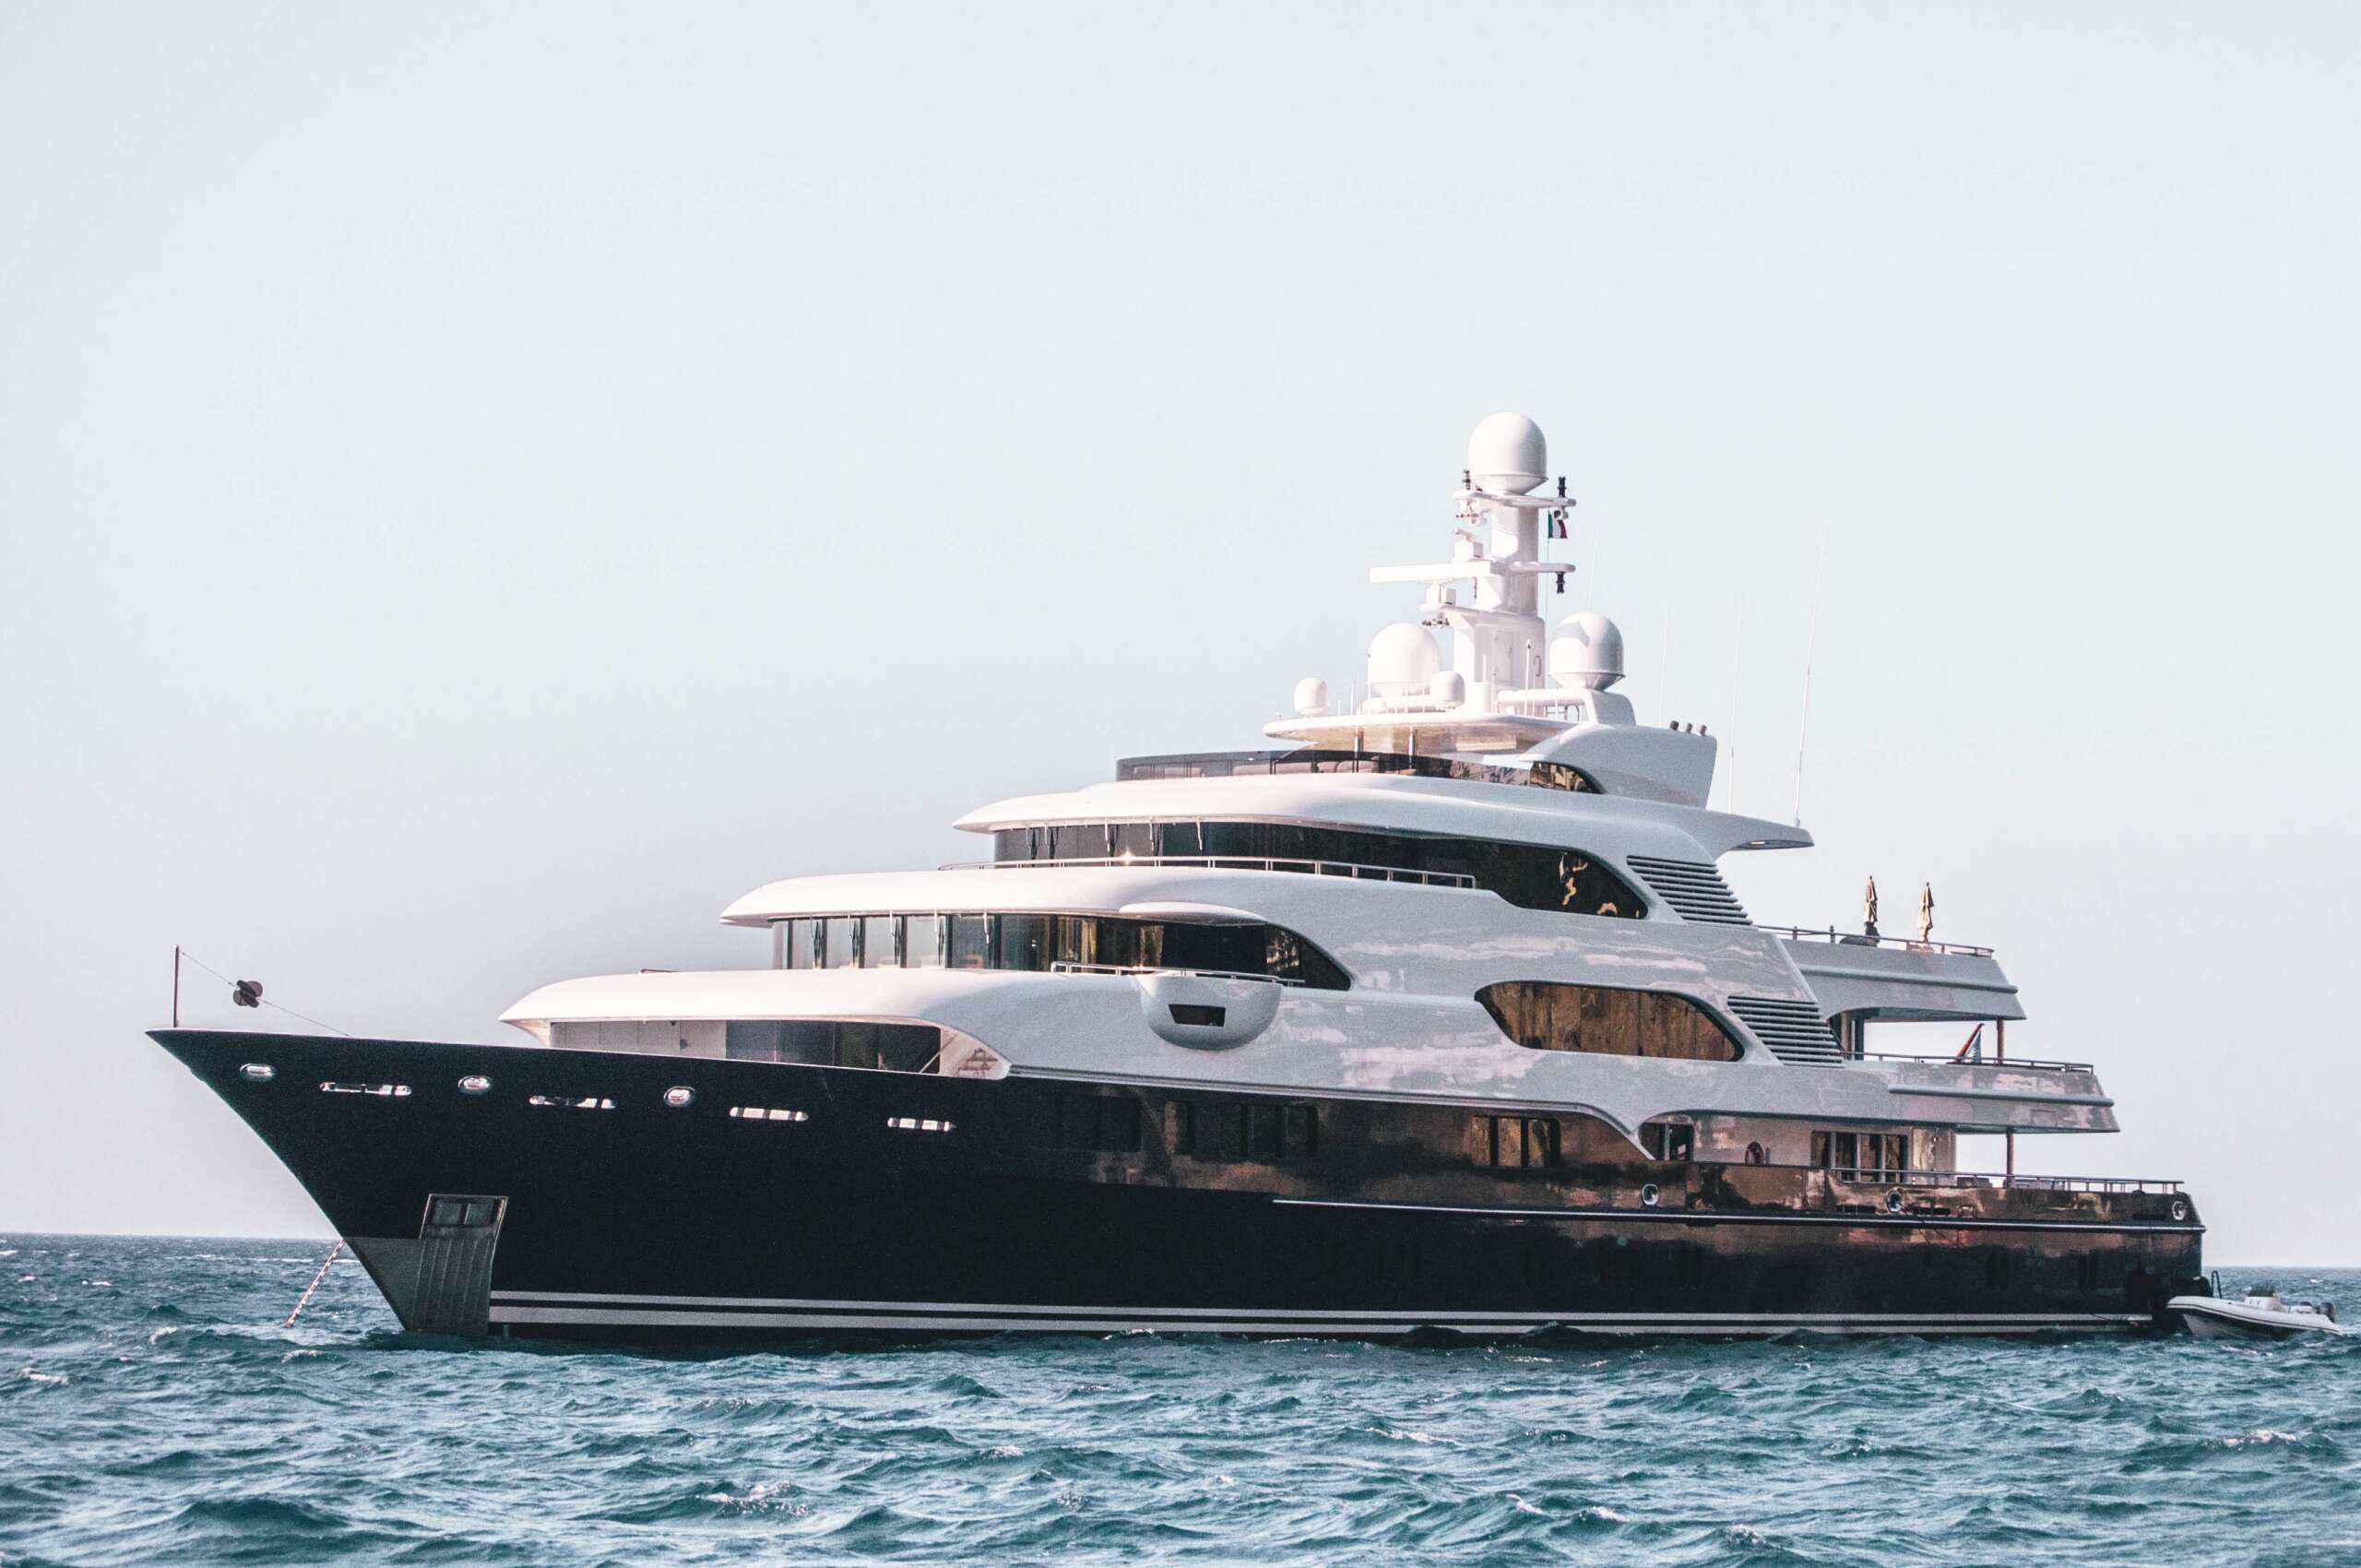 Location yacht Cannes - Boat Party Cote D Azur - Yachting Dj French Riviera